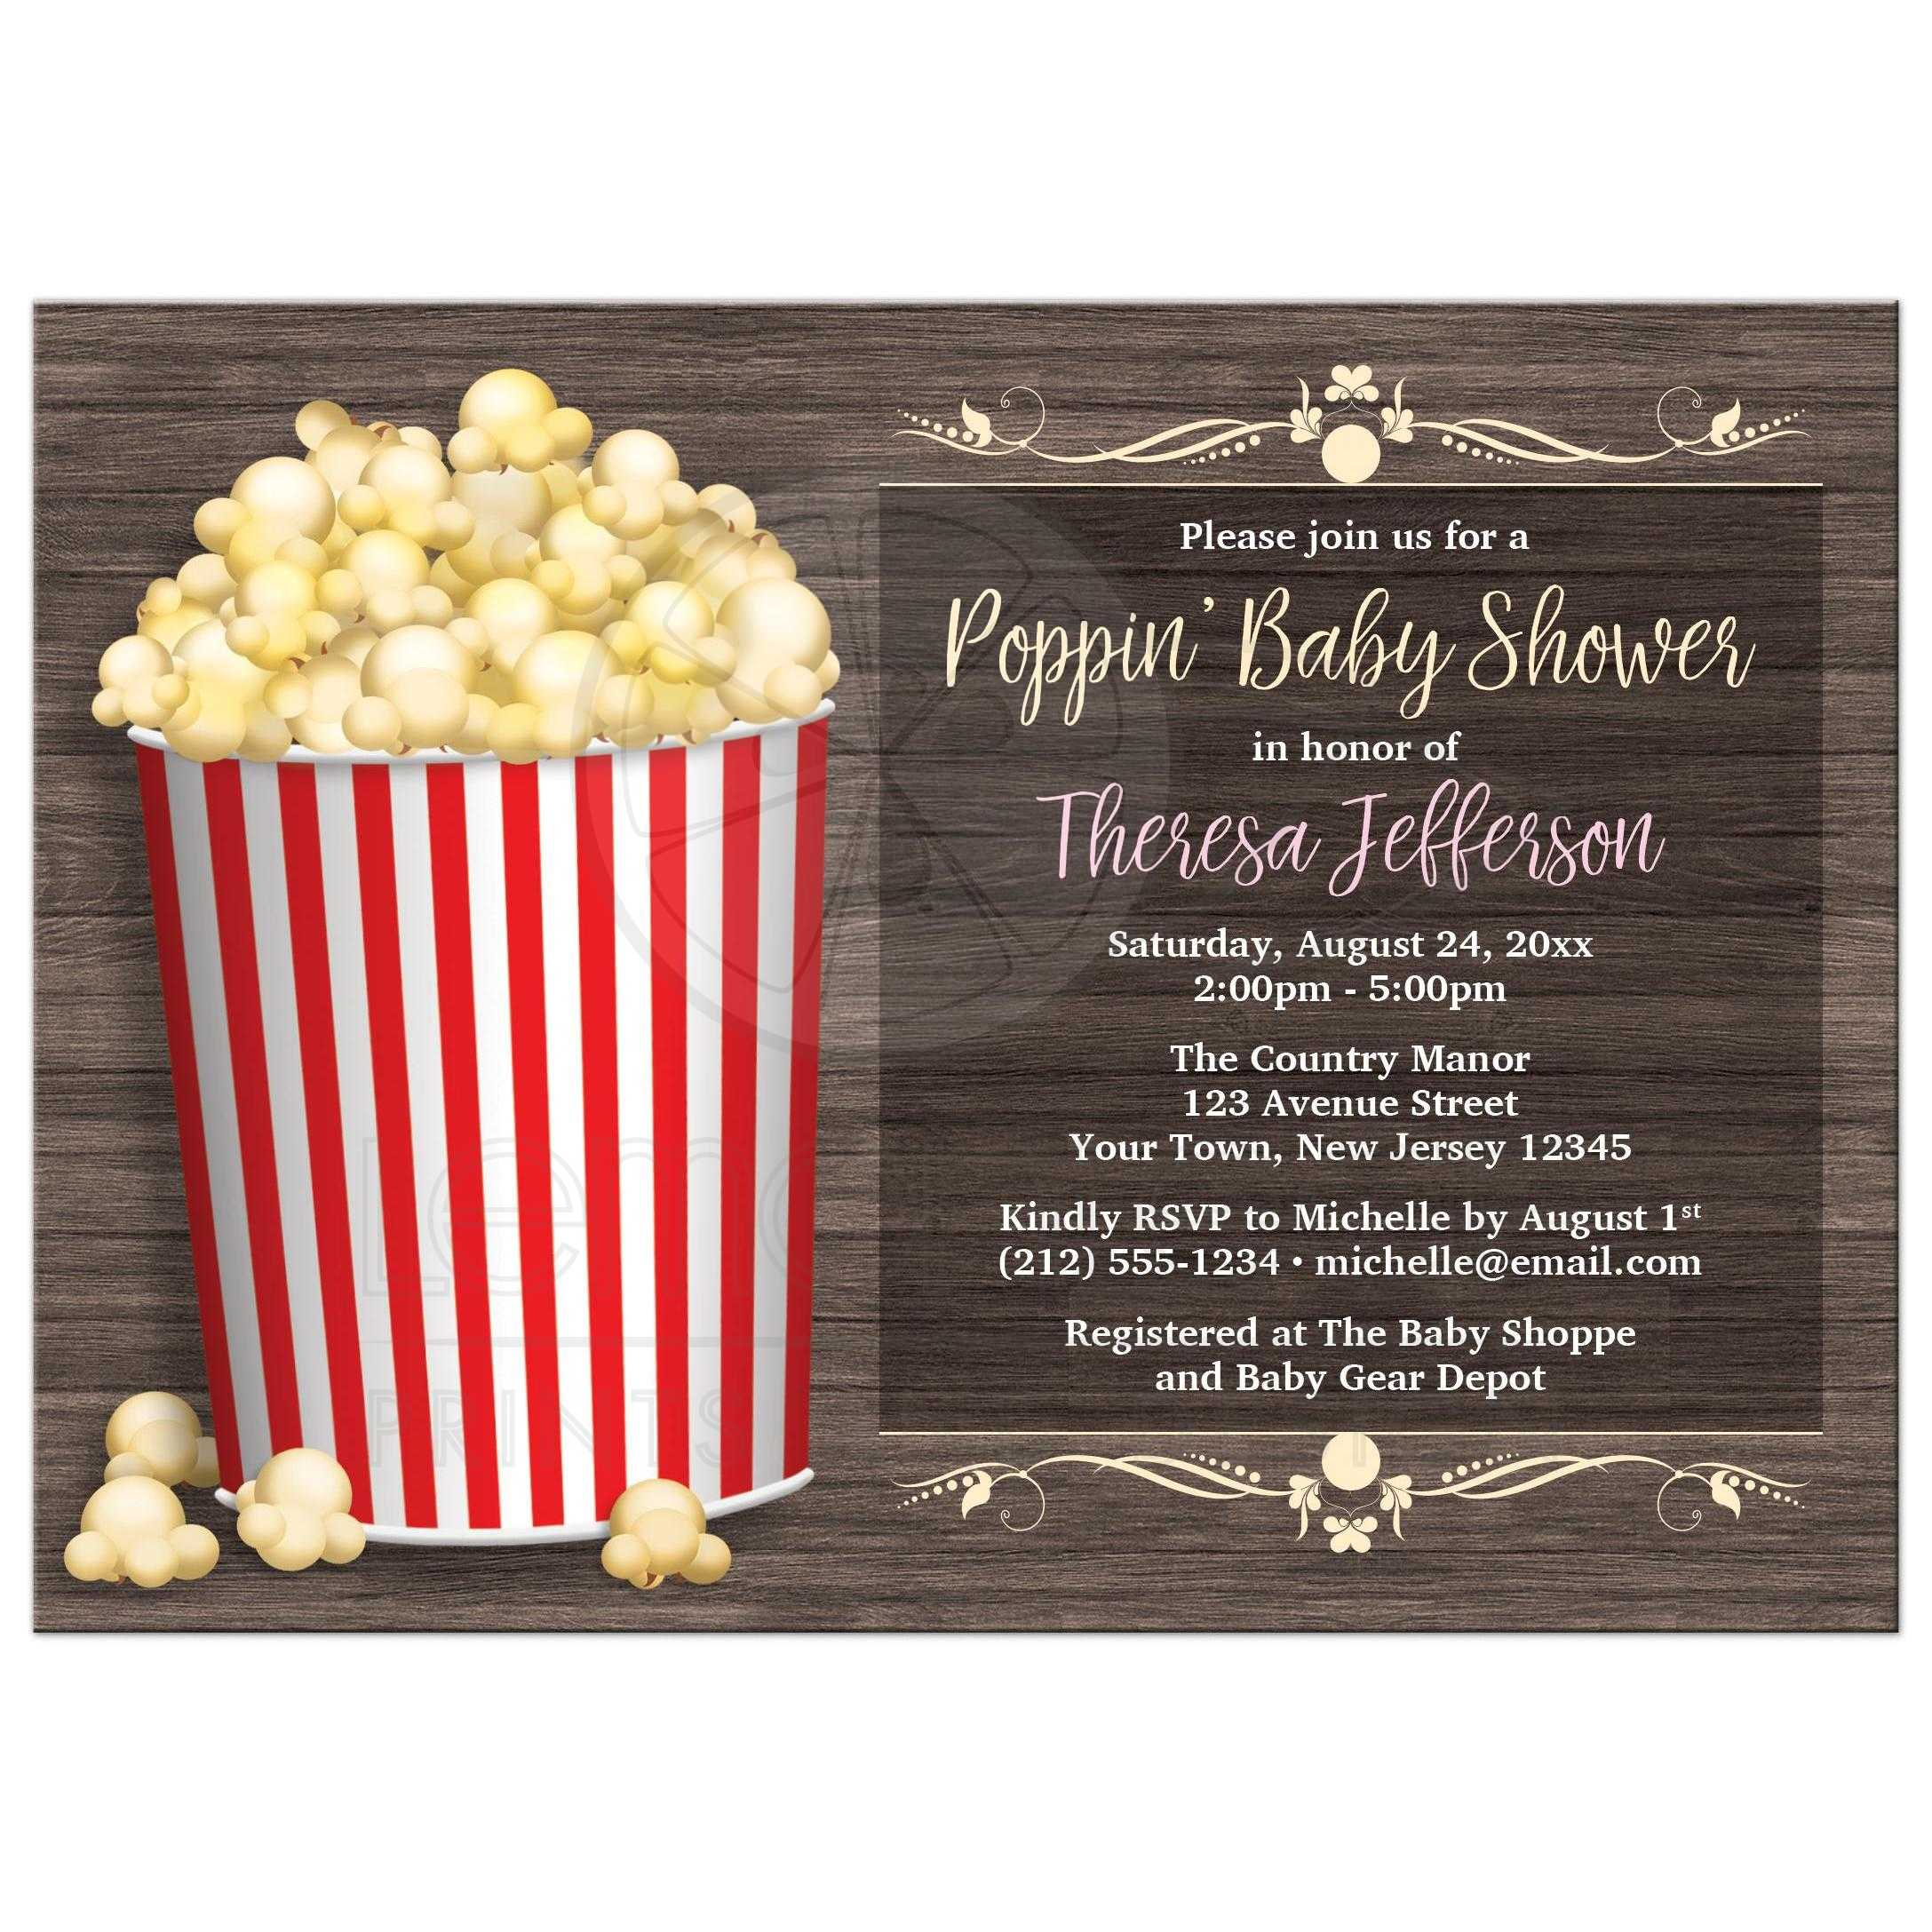 Shower Invitations Popcorn theme Rustic Wood